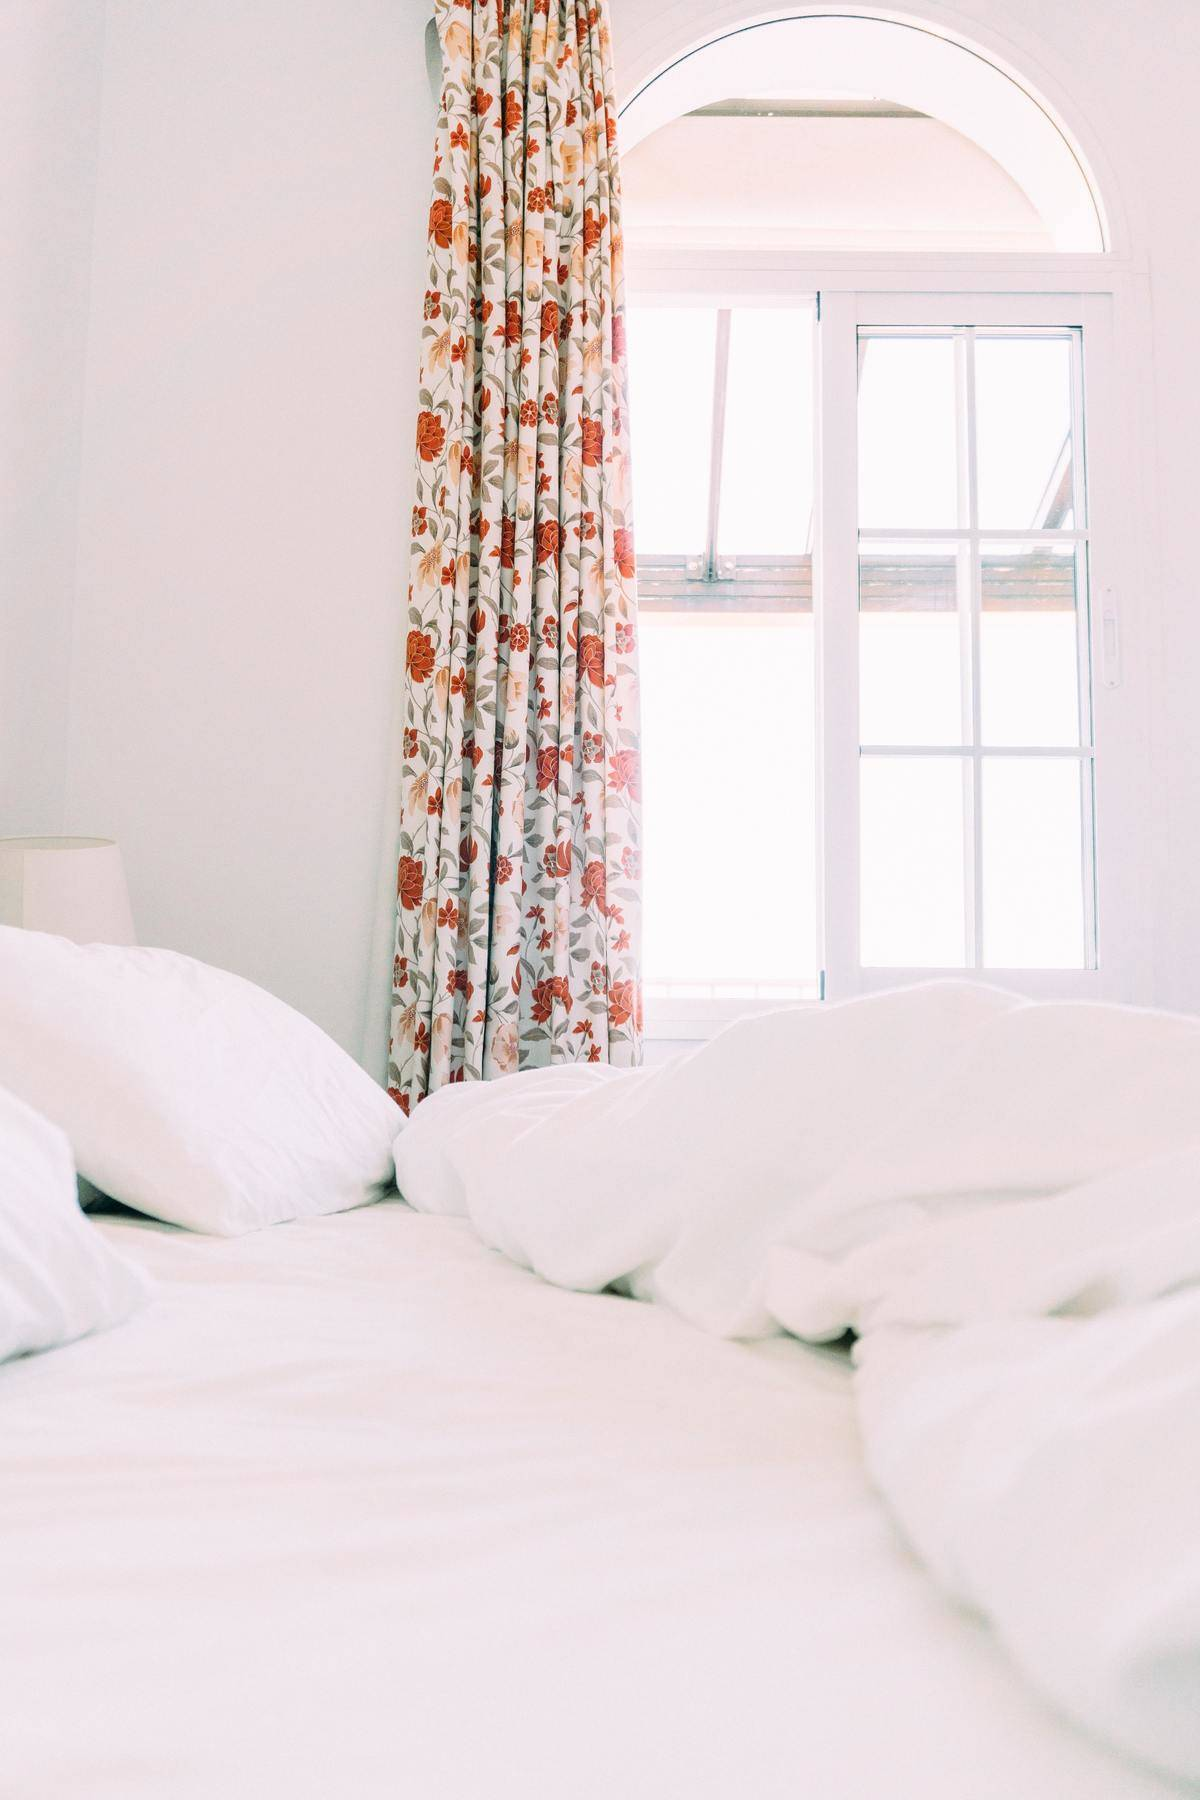 a white room with flower curtains